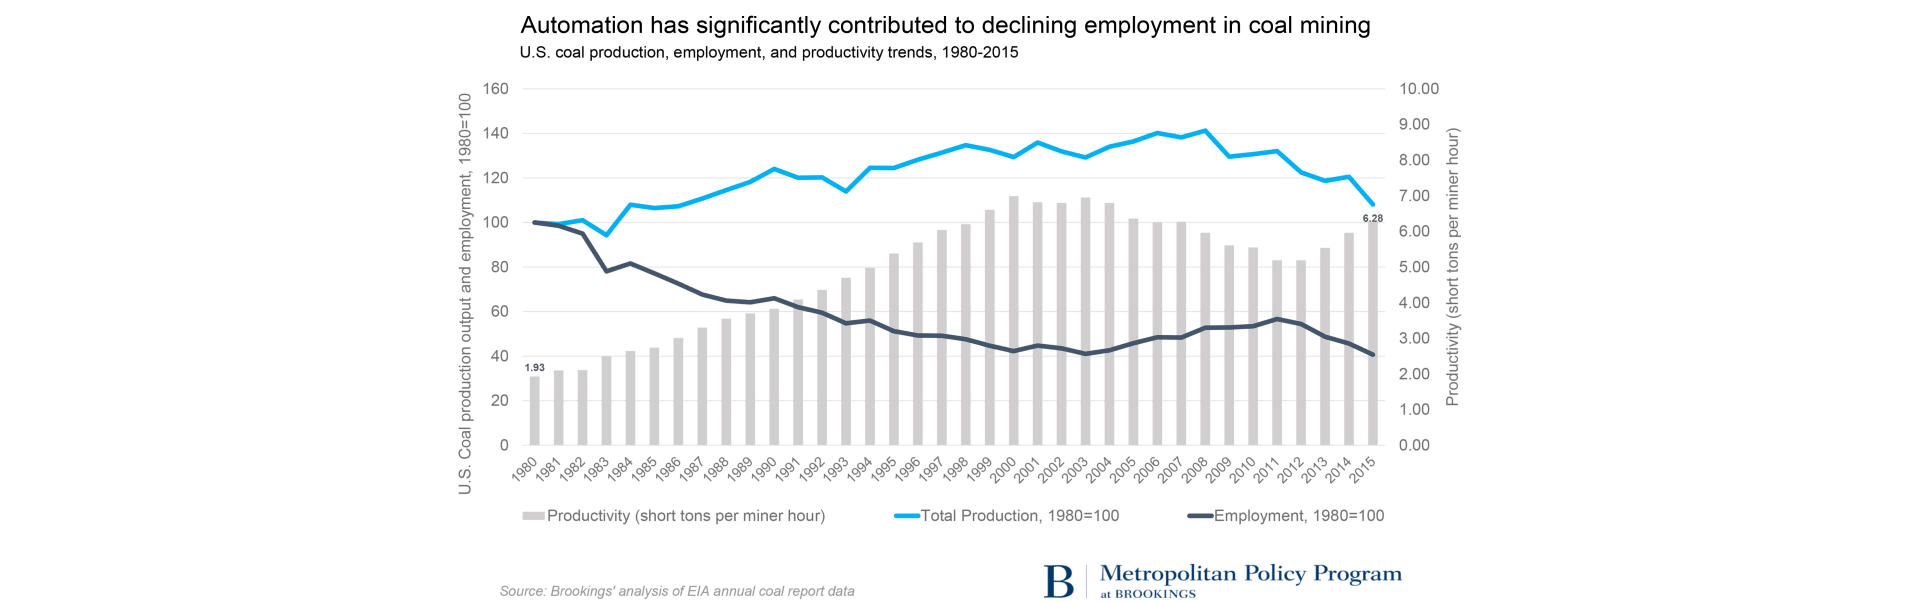 Automation has significantly contributed to declining employment in coal mining